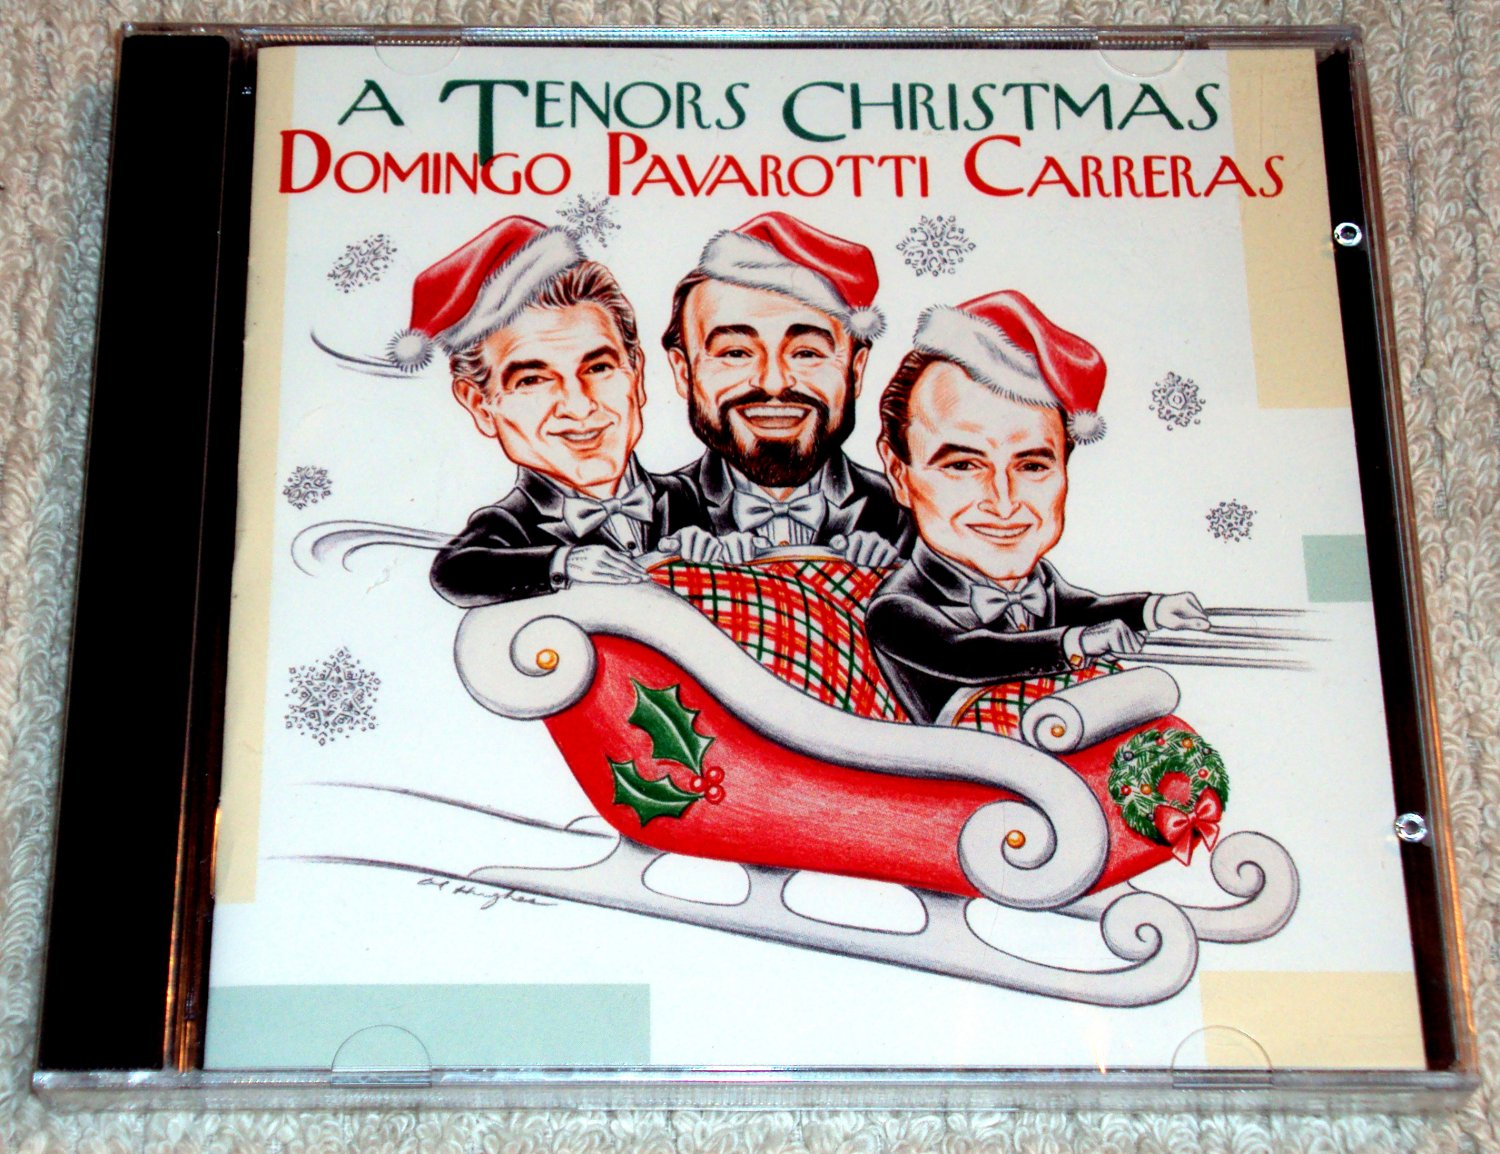 A Tenors Christmas: Domingo, Pavarotti, Carreras (CD) NEW SEALED Dionne Warwick